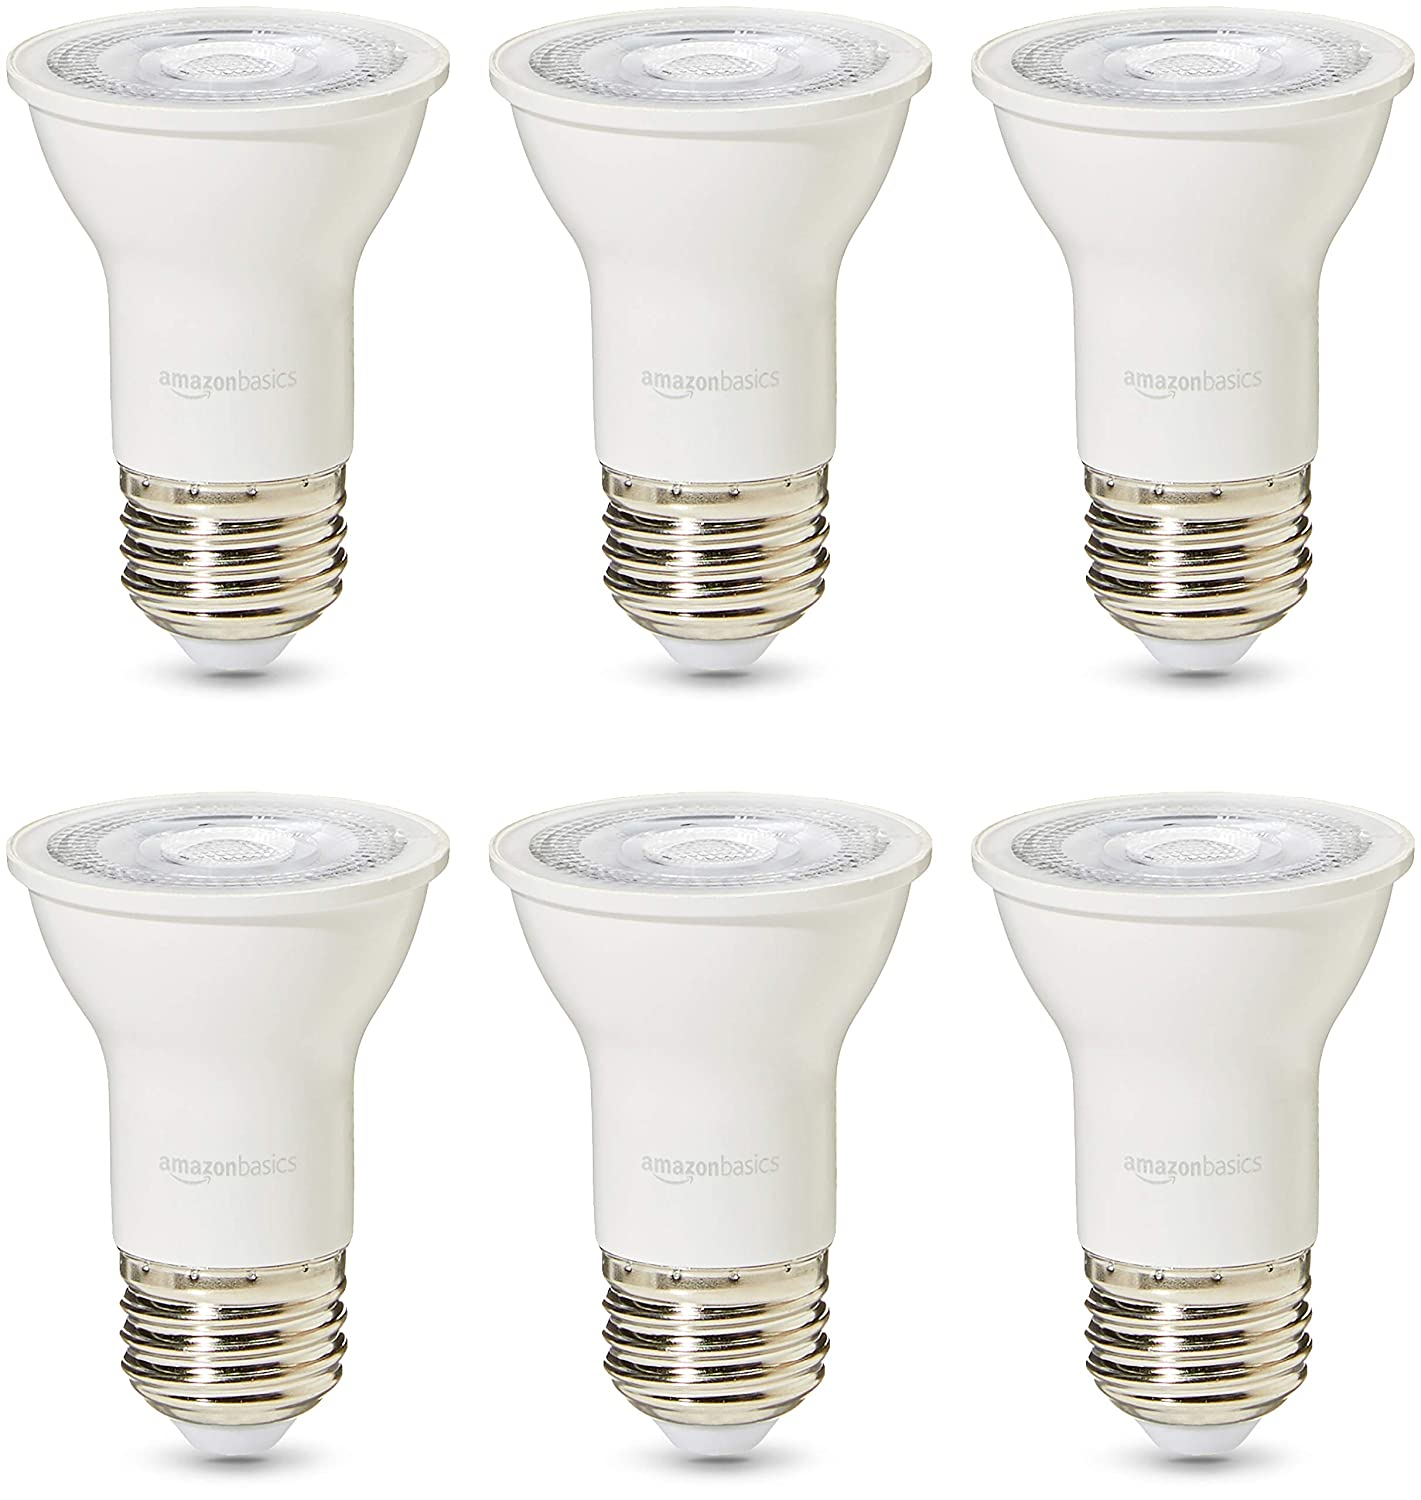 AmazonBasics Commercial Grade LED Light Bulb | 50-Watt Equivalent, PAR16, Warm White, Dimmable, 6-Pack